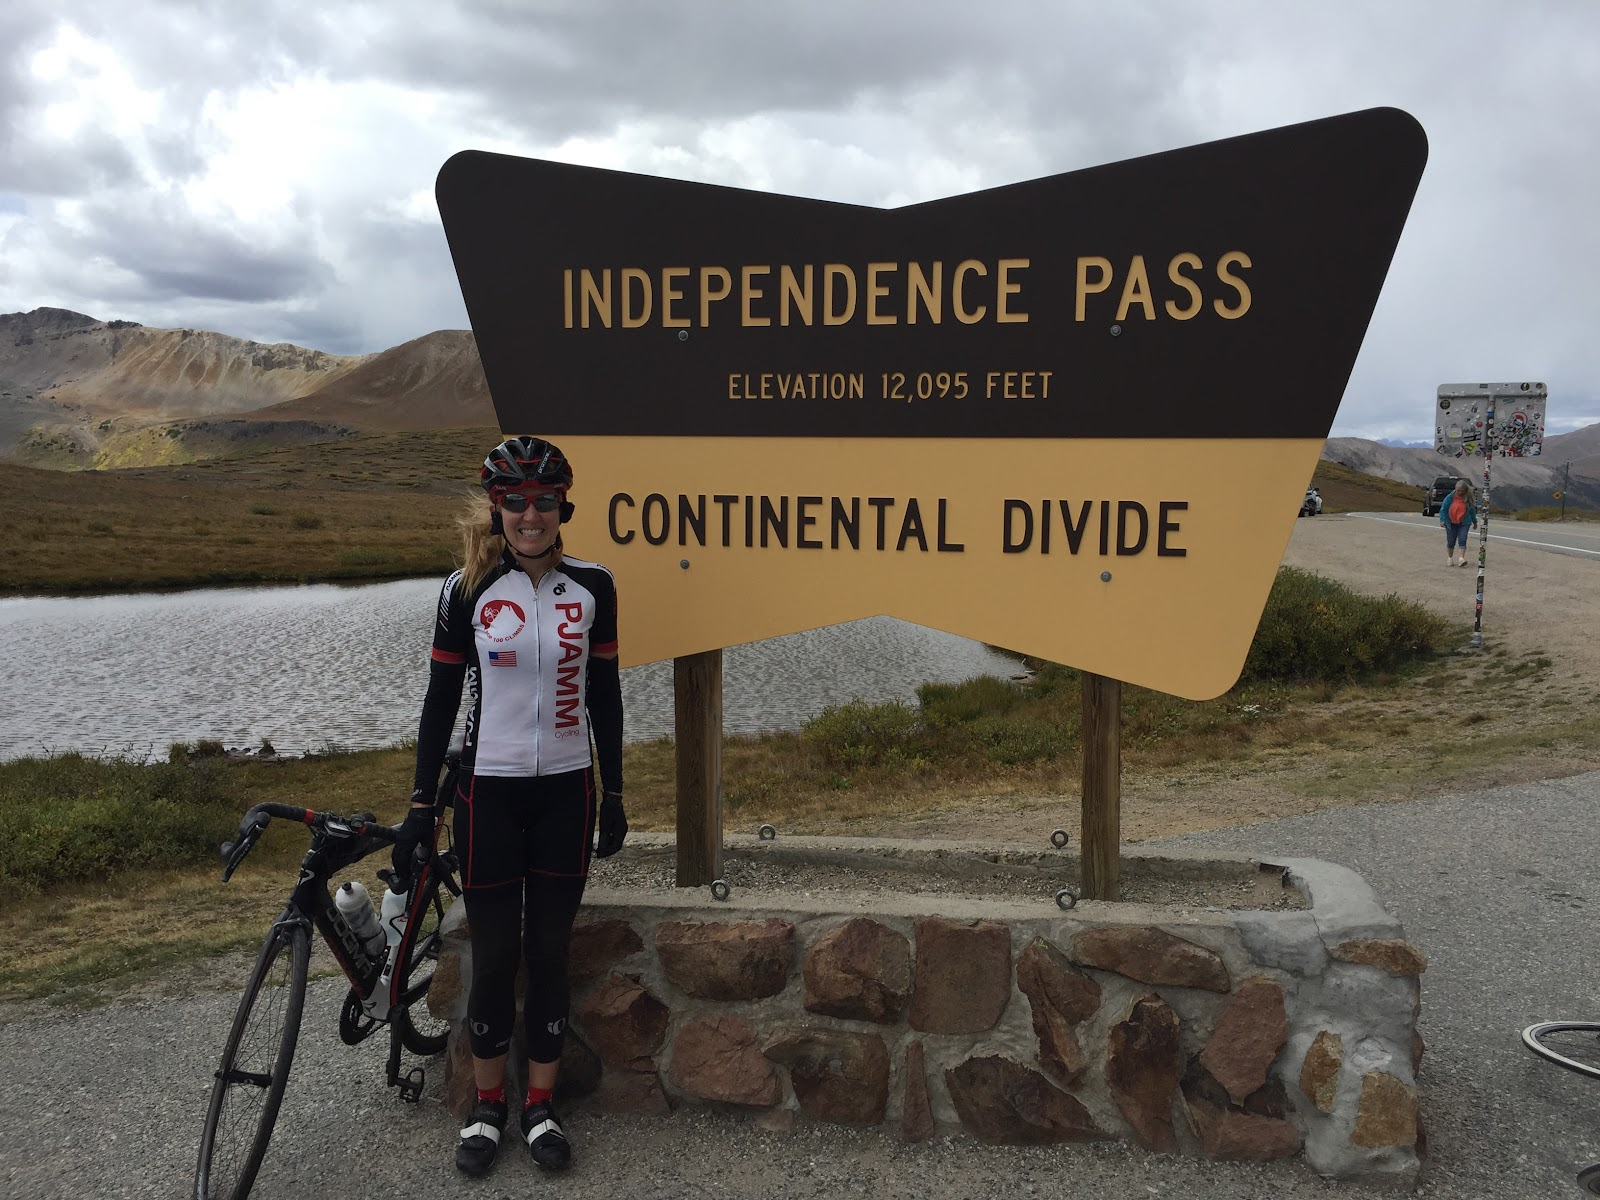 Bike climb of Independence Pass - Continental Divide sign and PJAMM cyclist Stacy Topping